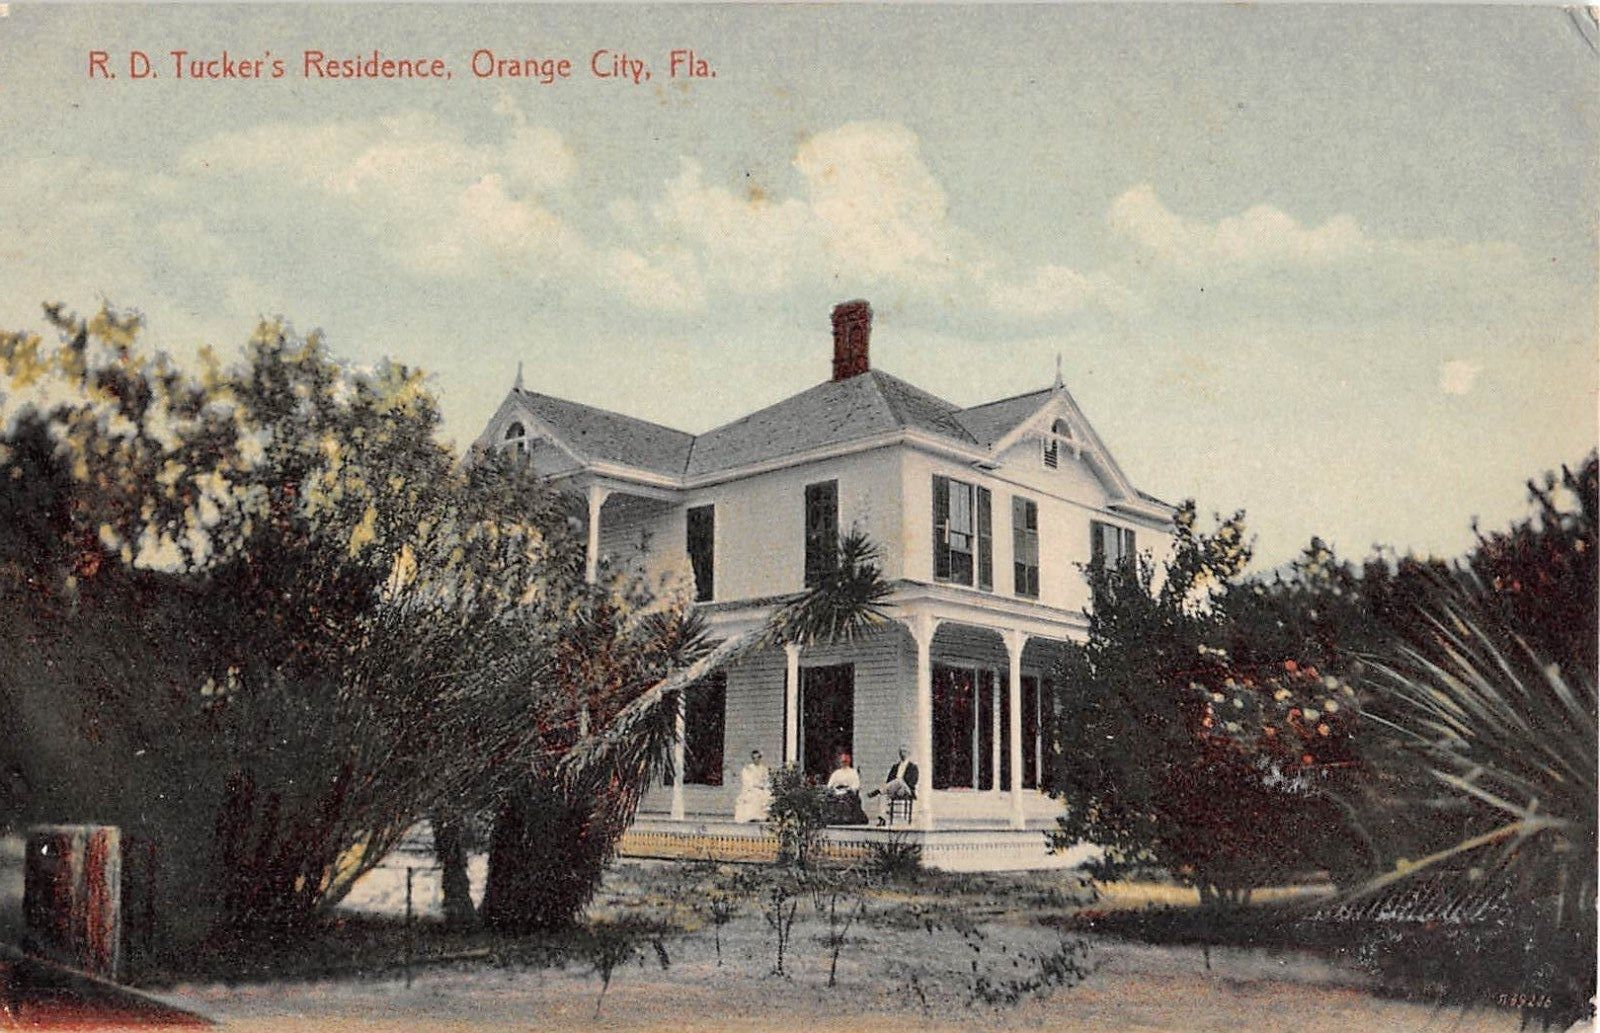 R.D. Tucker's Residence Orange City Fla